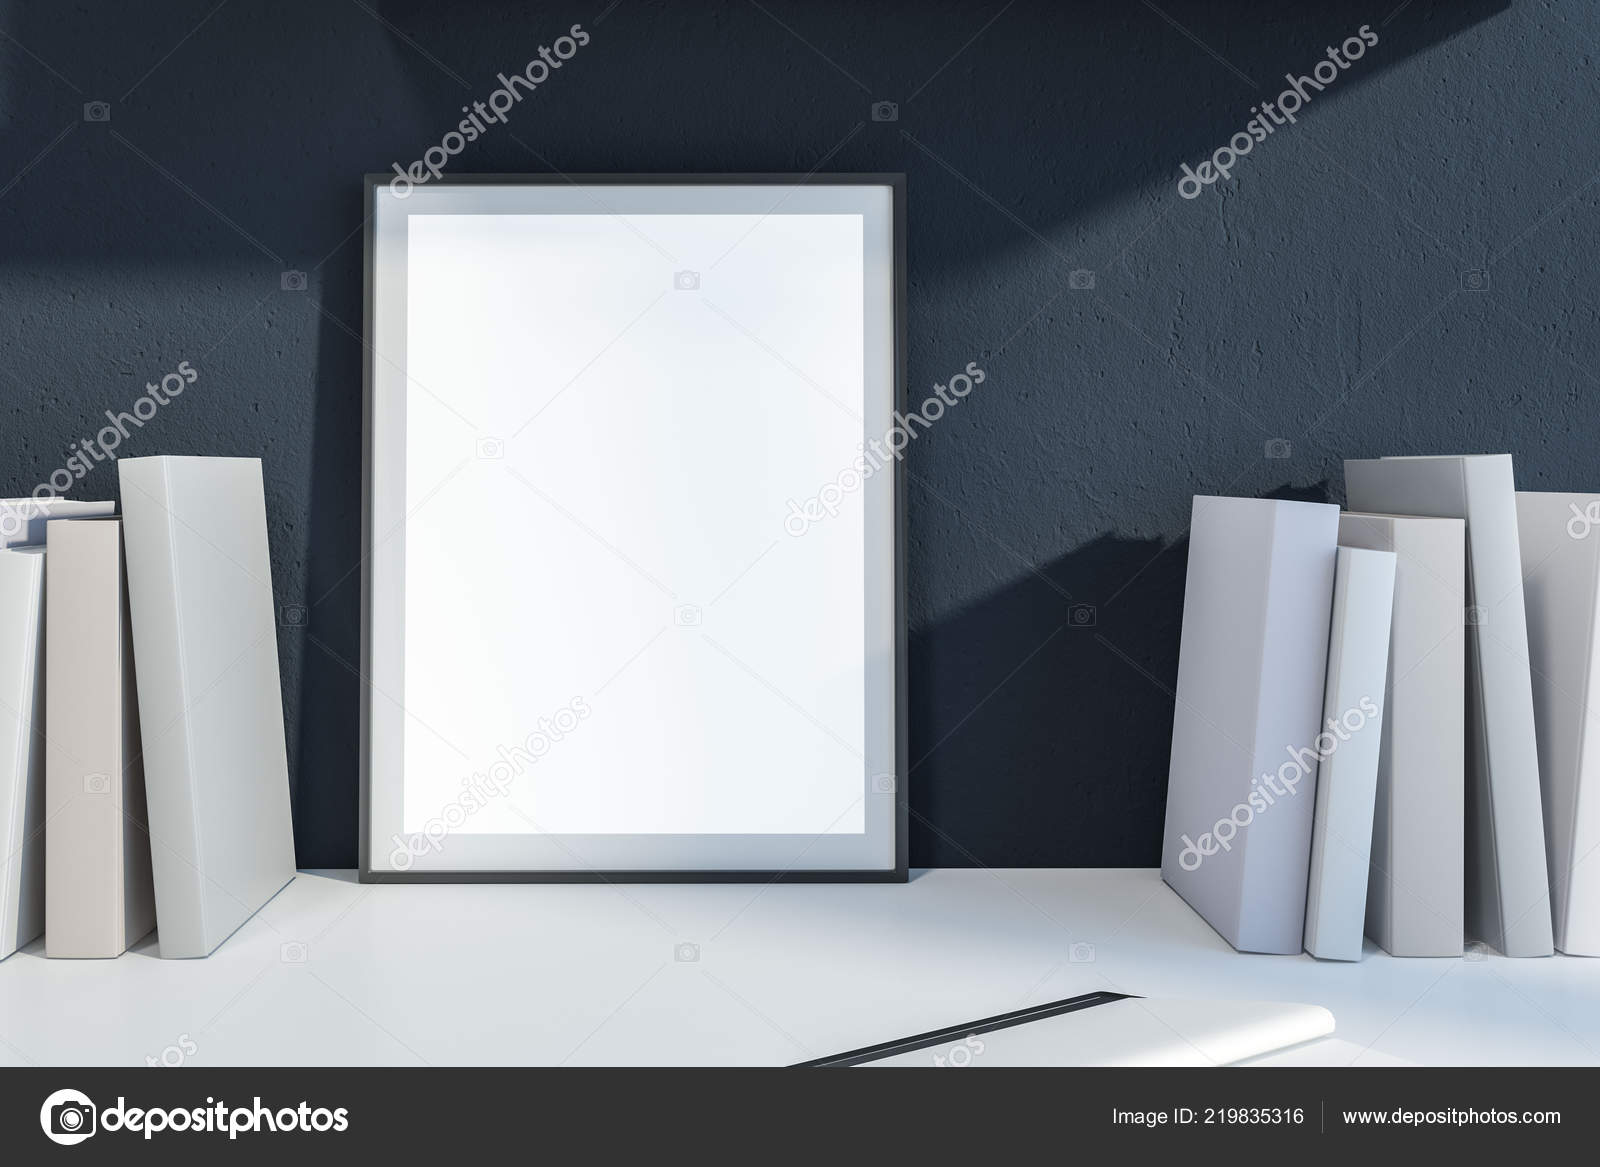 Bookshelf With Blank Book Covers And Vertical Mock Up Poster Frame Leaning Against Dark Gray Wall Advertising Marketing Concept